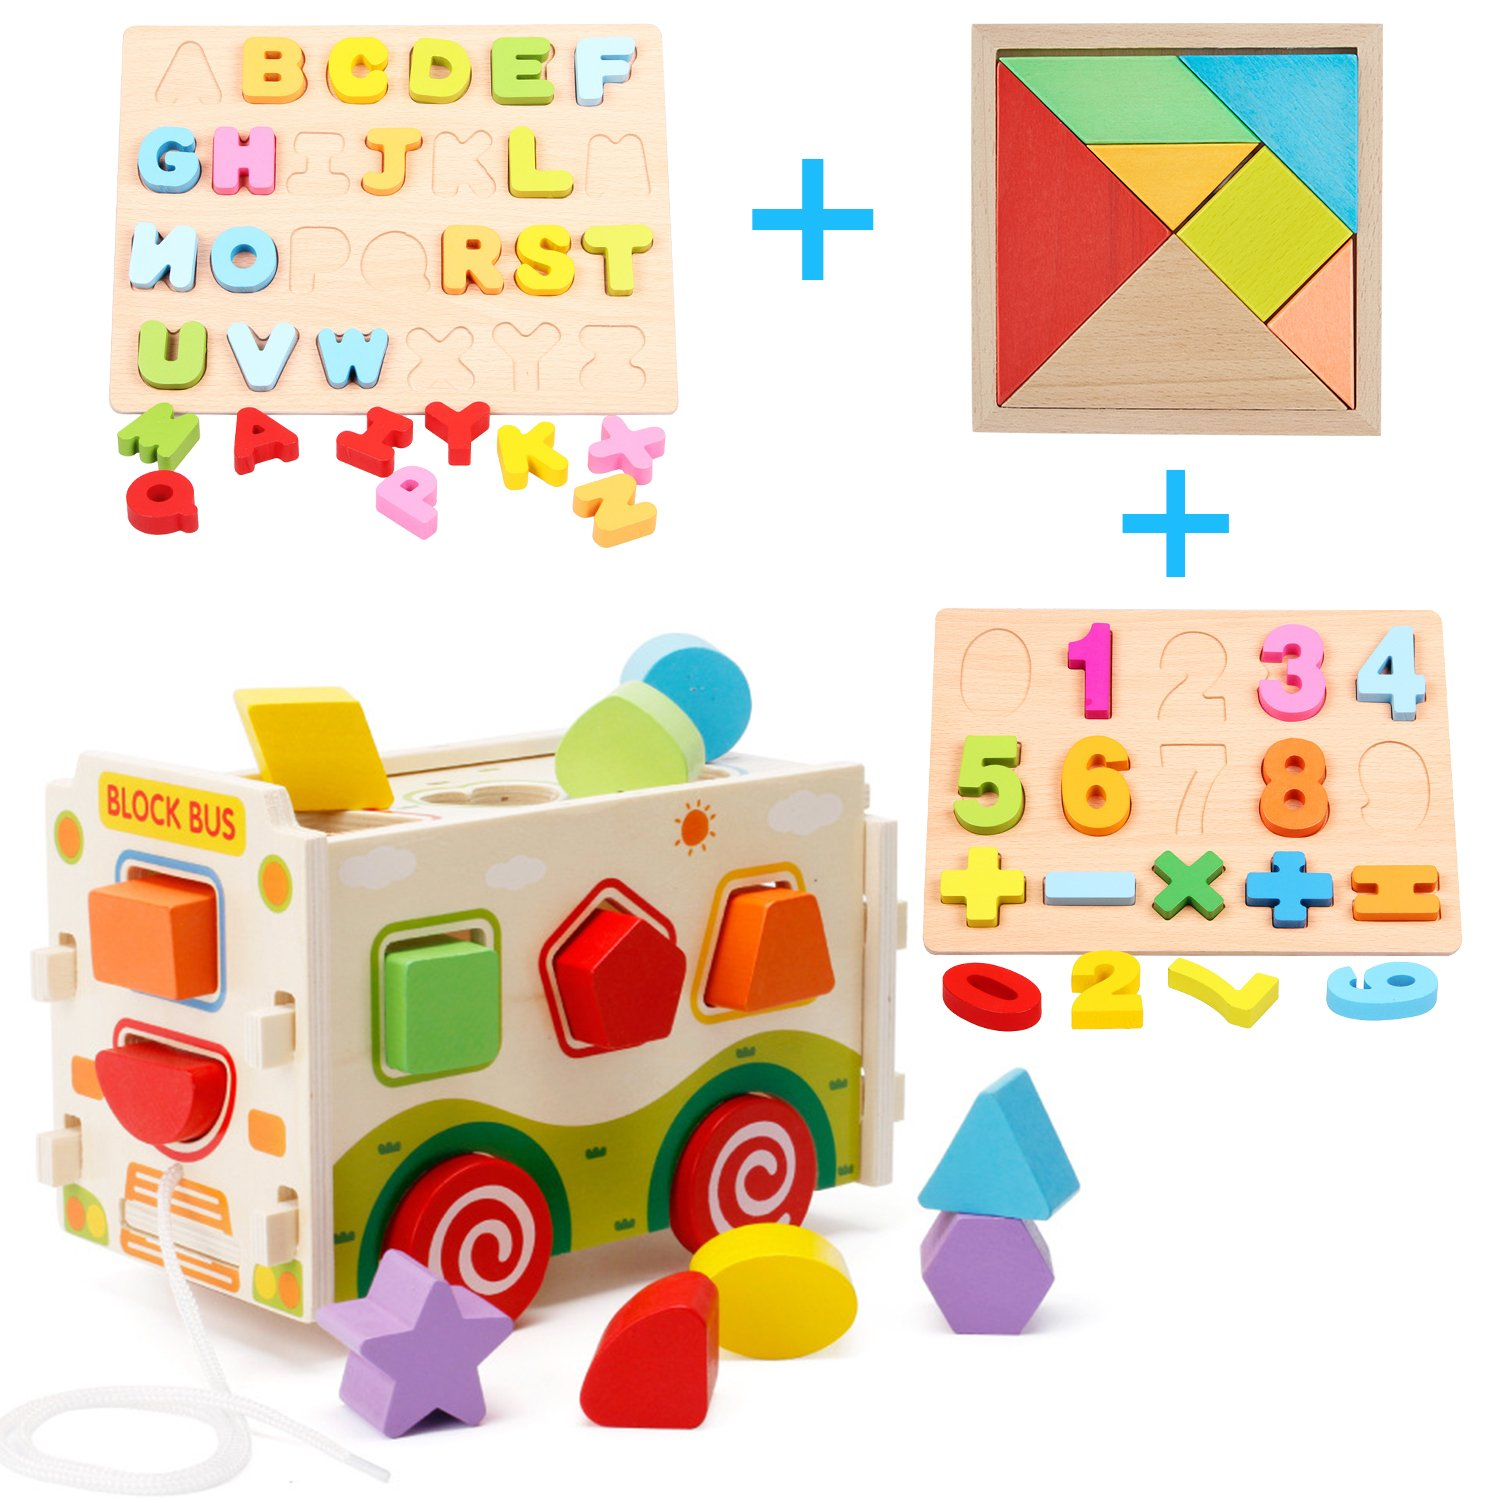 Cool Bank Wooden Shape Sorter Bus with Tangram & Number Puzzle Board & Alphabet Puzzle Board, Classic 3D Push Pull Truck Toy for Toddlers & Baby Color Recognition and Geometry Learning